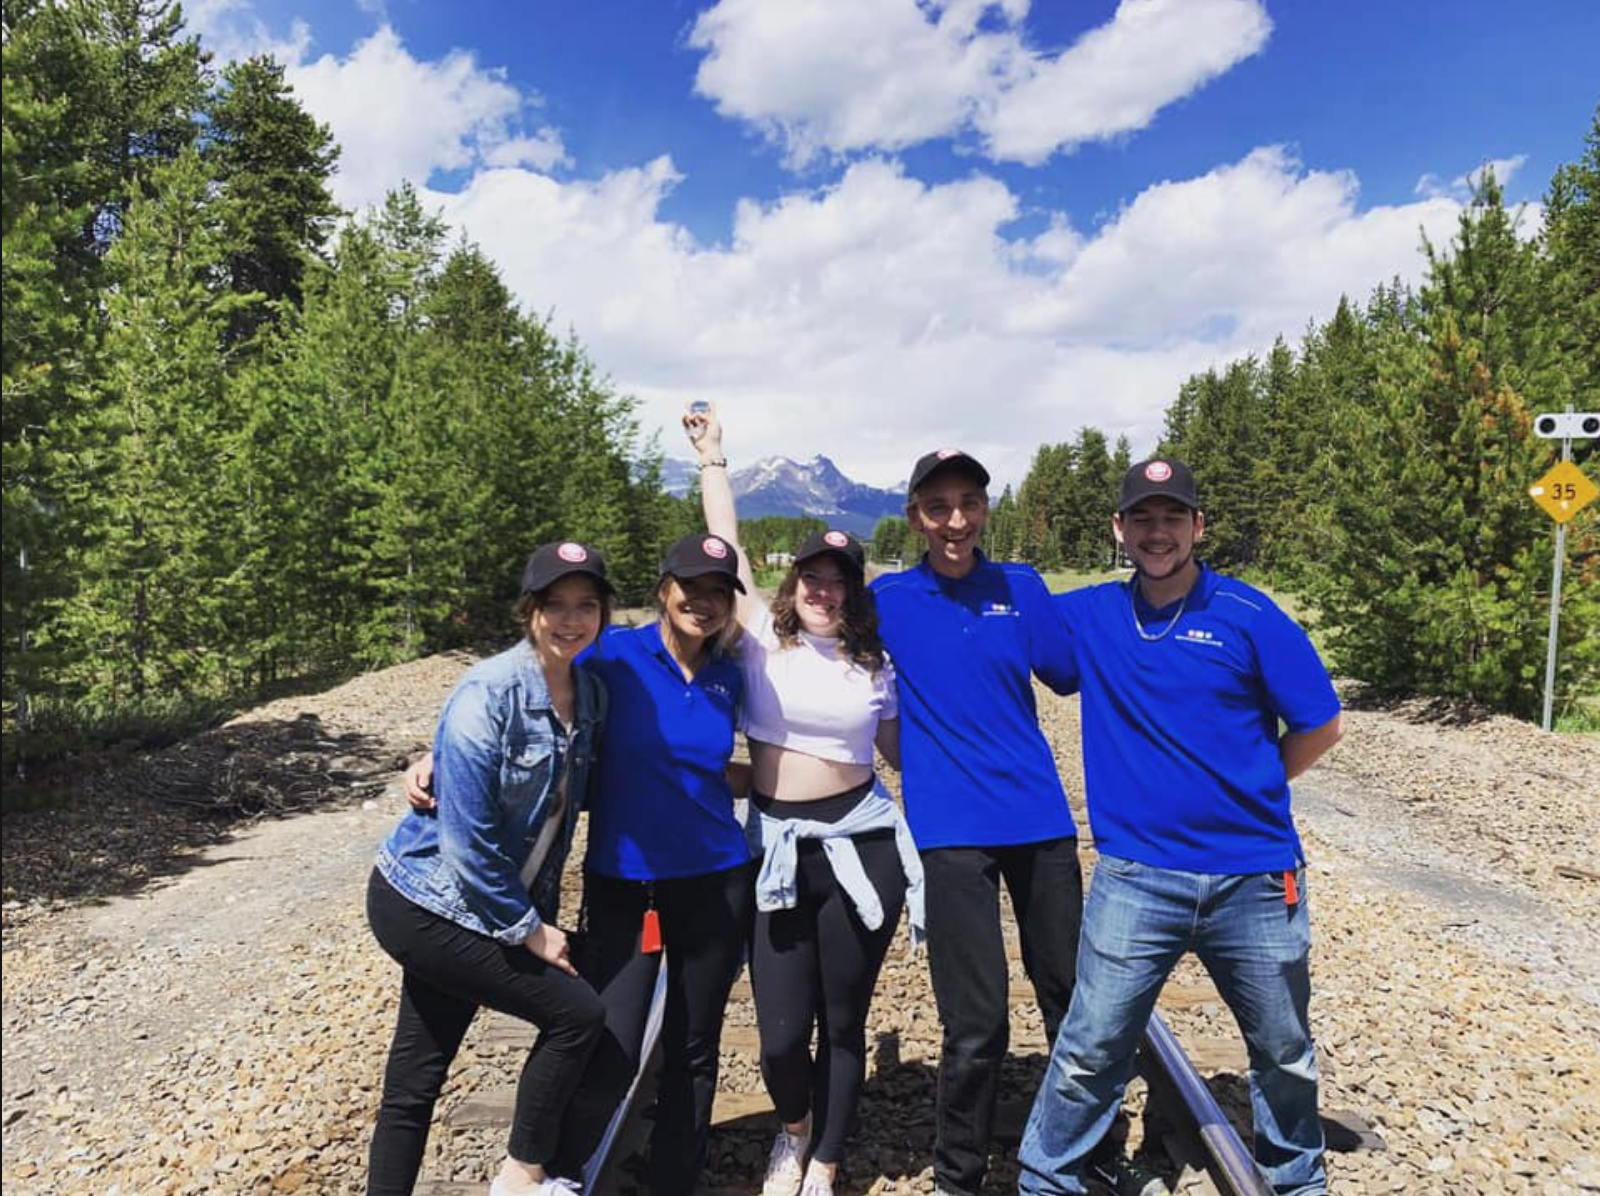 Go Mobilize! These young Canadians are having a work/travel adventure of a lifetime!